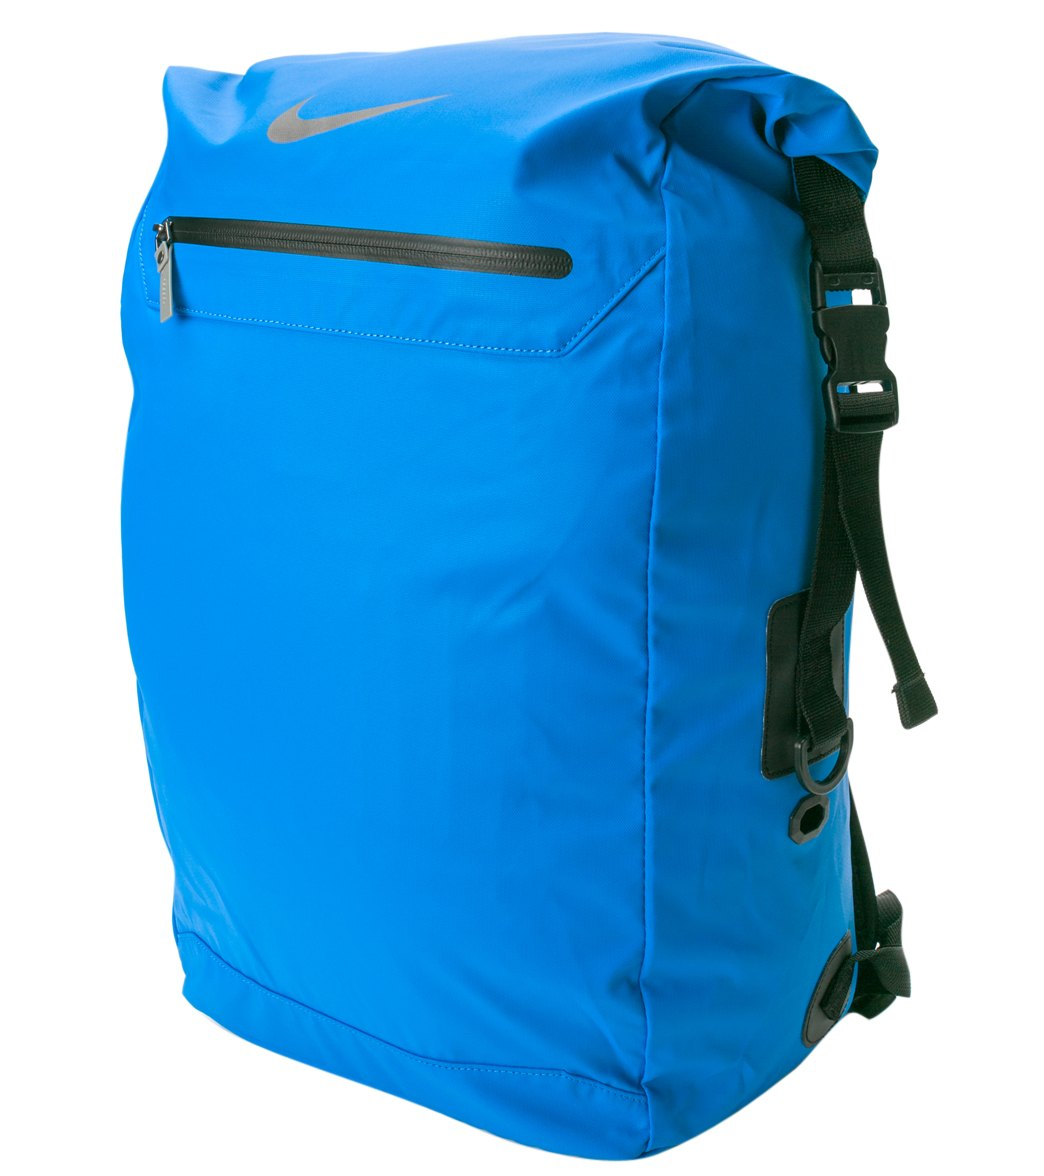 f98c145d7e7e Nike Swim Swimmers Backpack at SwimOutlet.com - Free Shipping